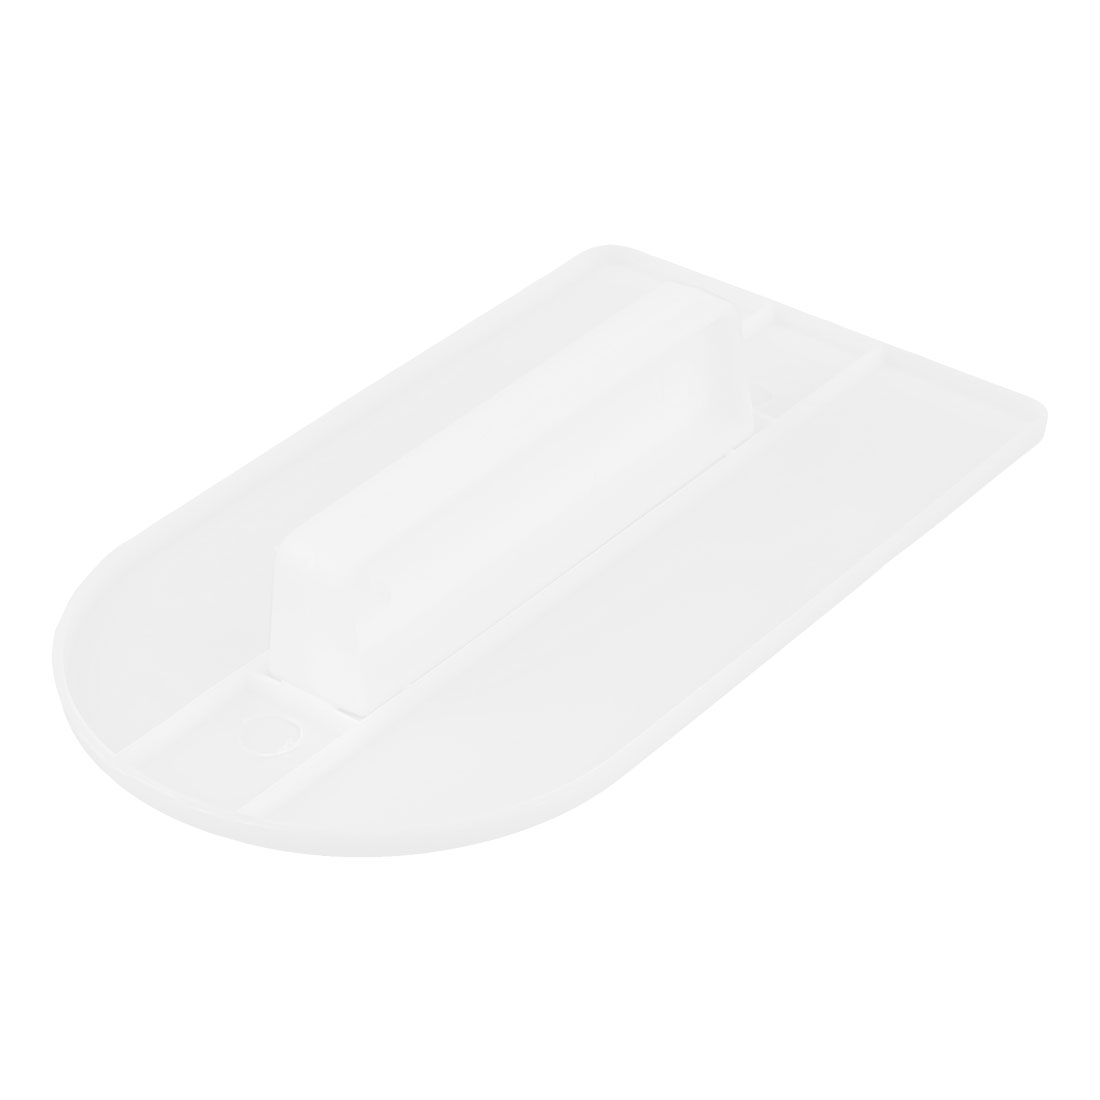 Bakery Kitchen Plastic Scraper Dessert Cake Cream Smoother Polisher White